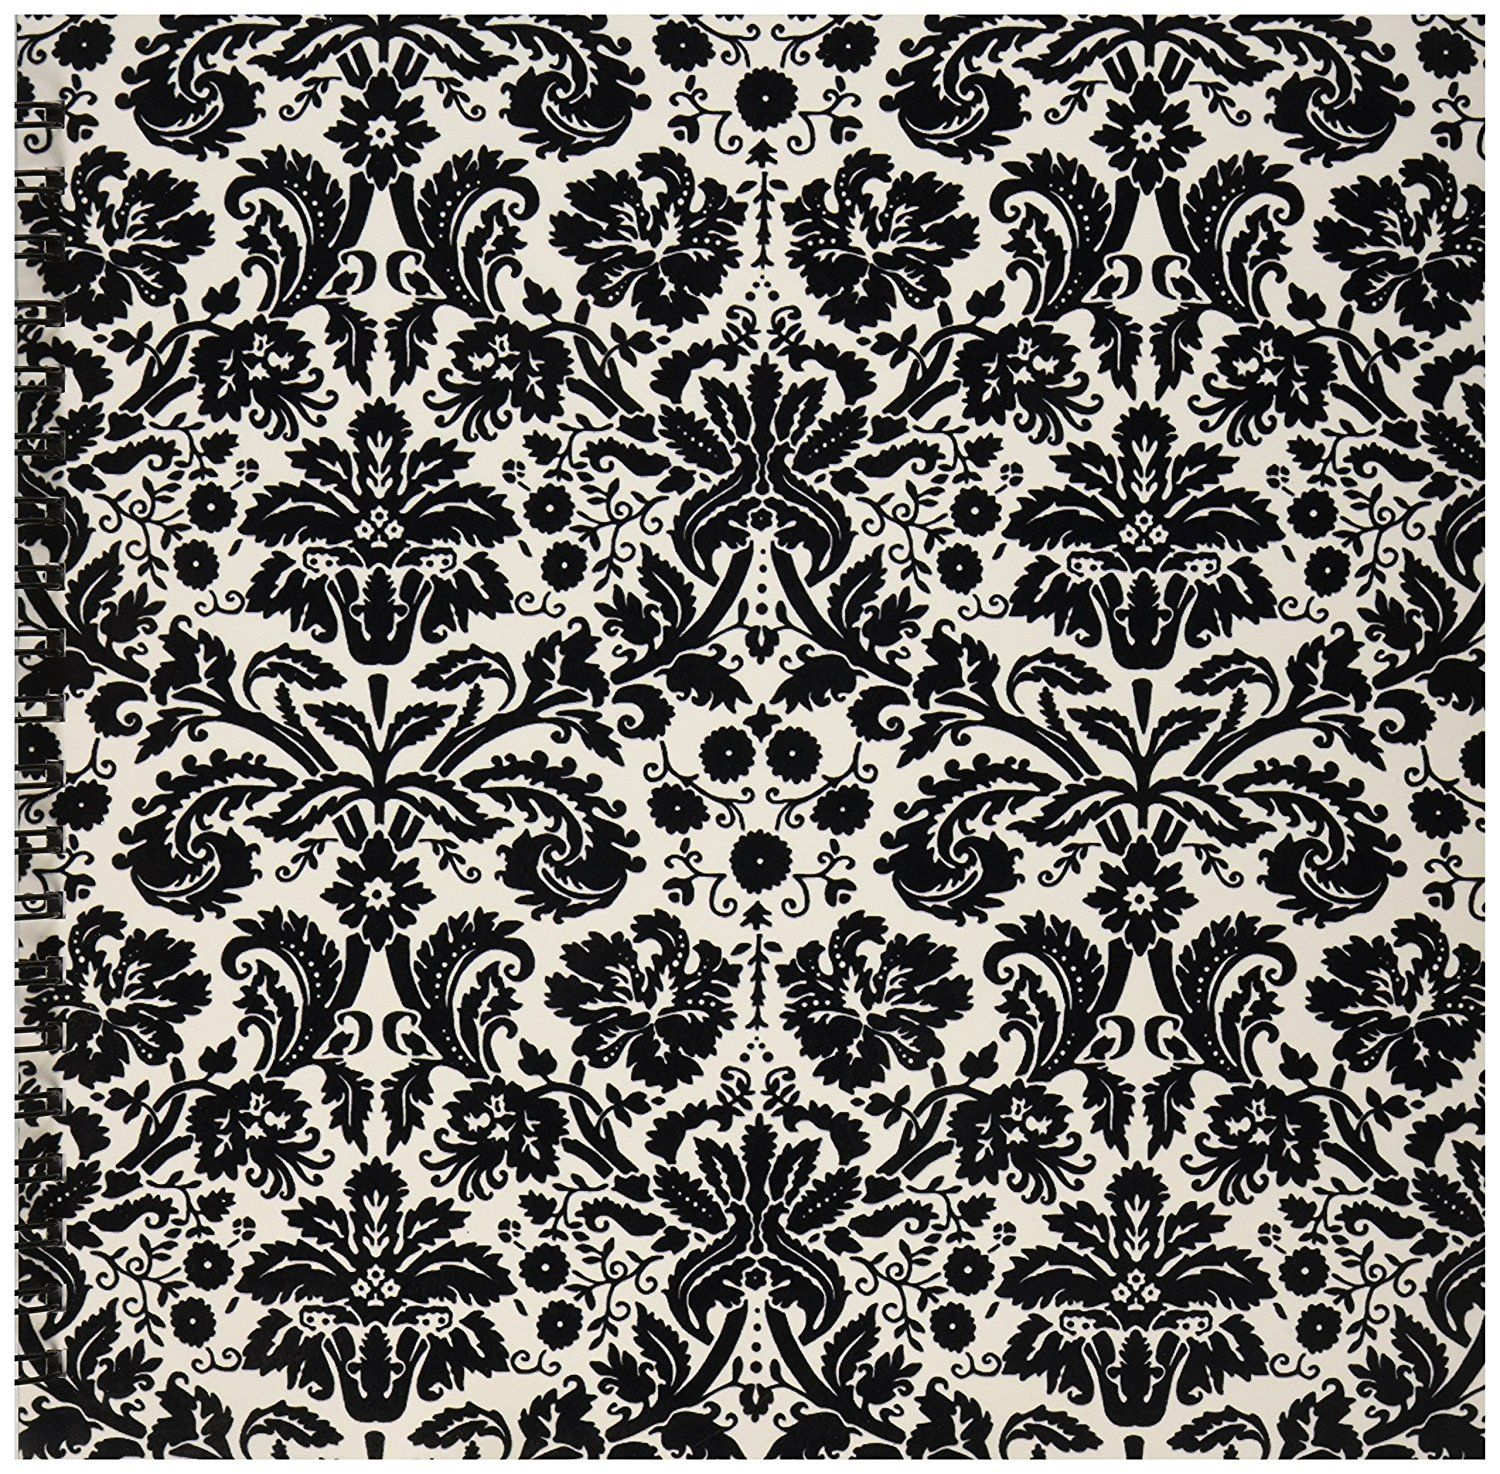 1500x1474 Buy 3dRose db_151441_2 Black and White Damask Stylish Swirling ...